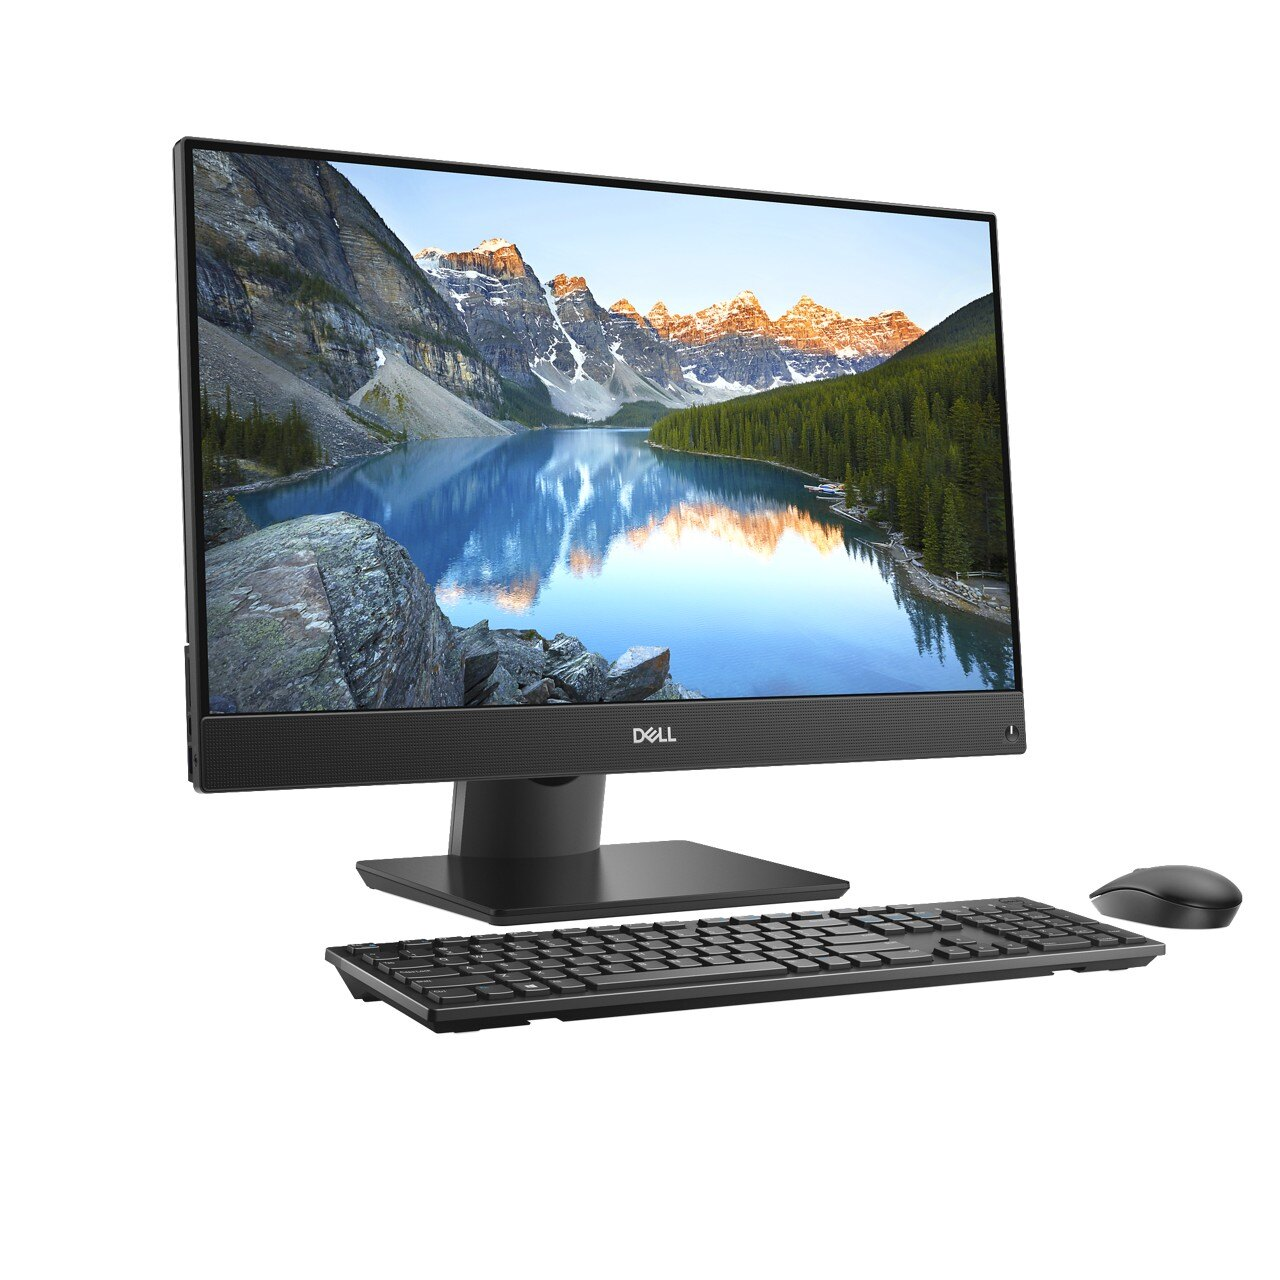 "Dell 23.8"" All-in-One (i3/8GB /1TB + 128GB SSD) + $209.70 Rakuten Credit"